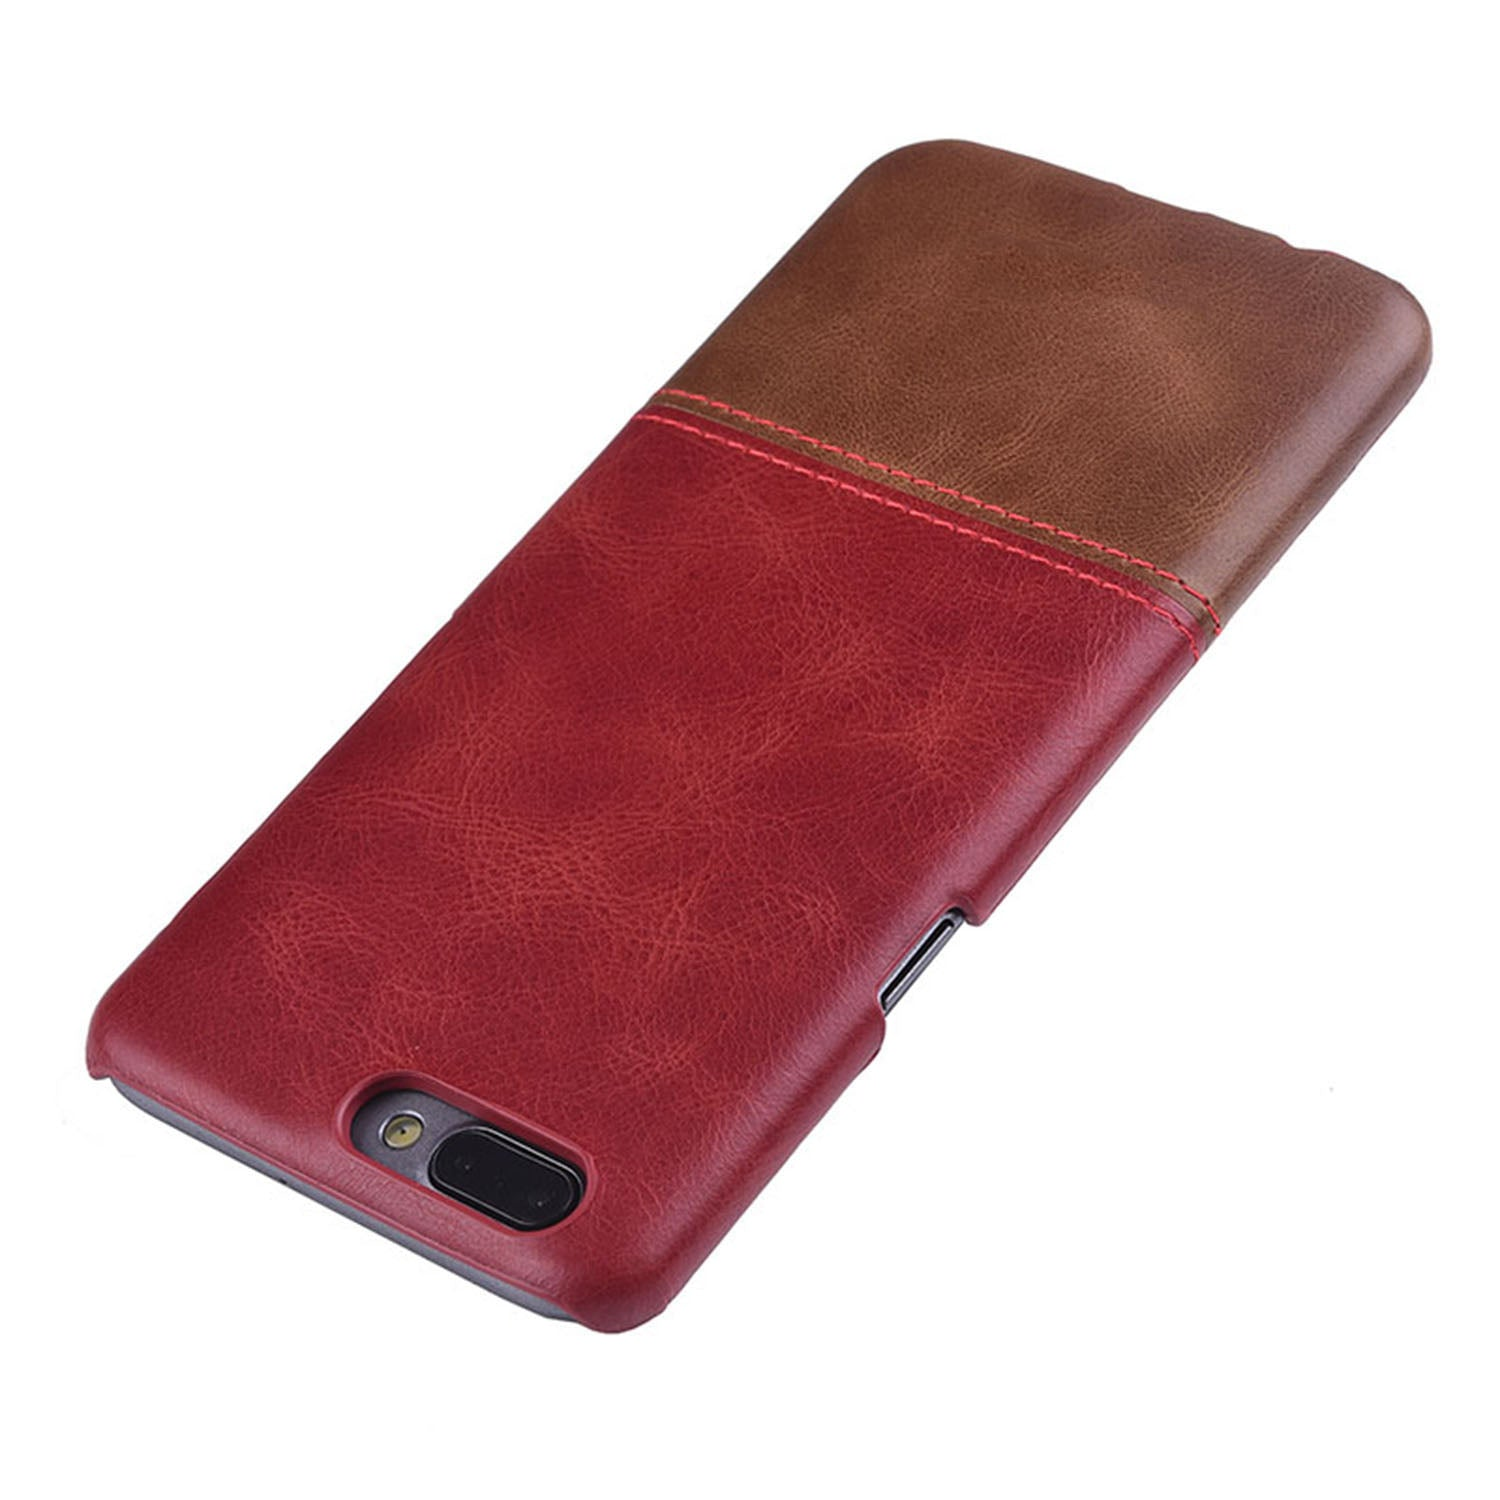 Genuine Leather Dual Color Hand Stitched Premium Protective Case Cover for Oneplus 5 - Wine Red, Brown - Mobizang